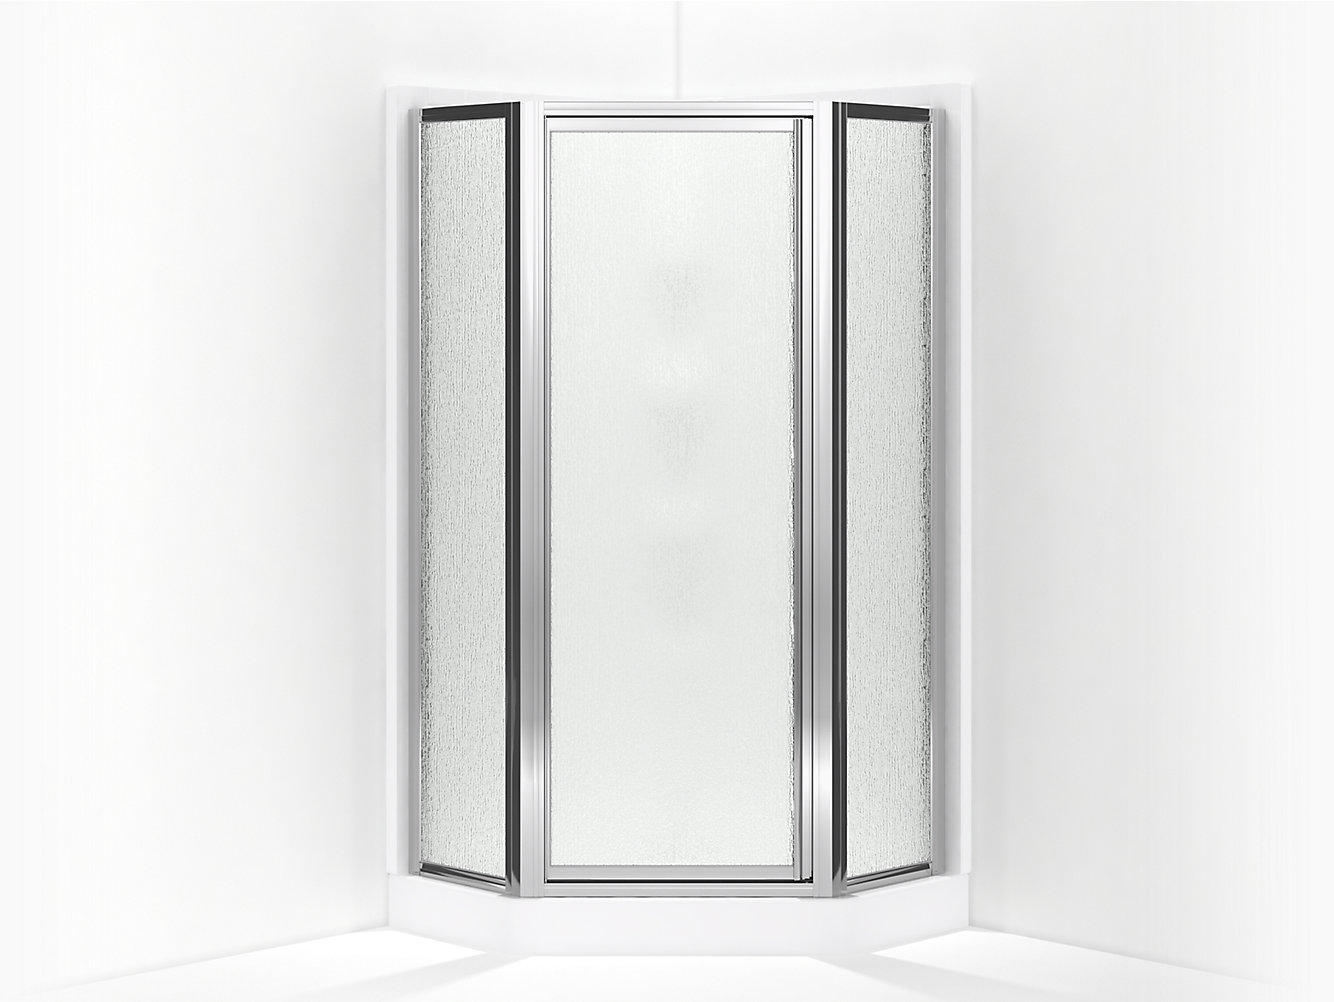 Intrigue Framed Neo Angle Corner Shower Door 15 1316 X 27 916 X